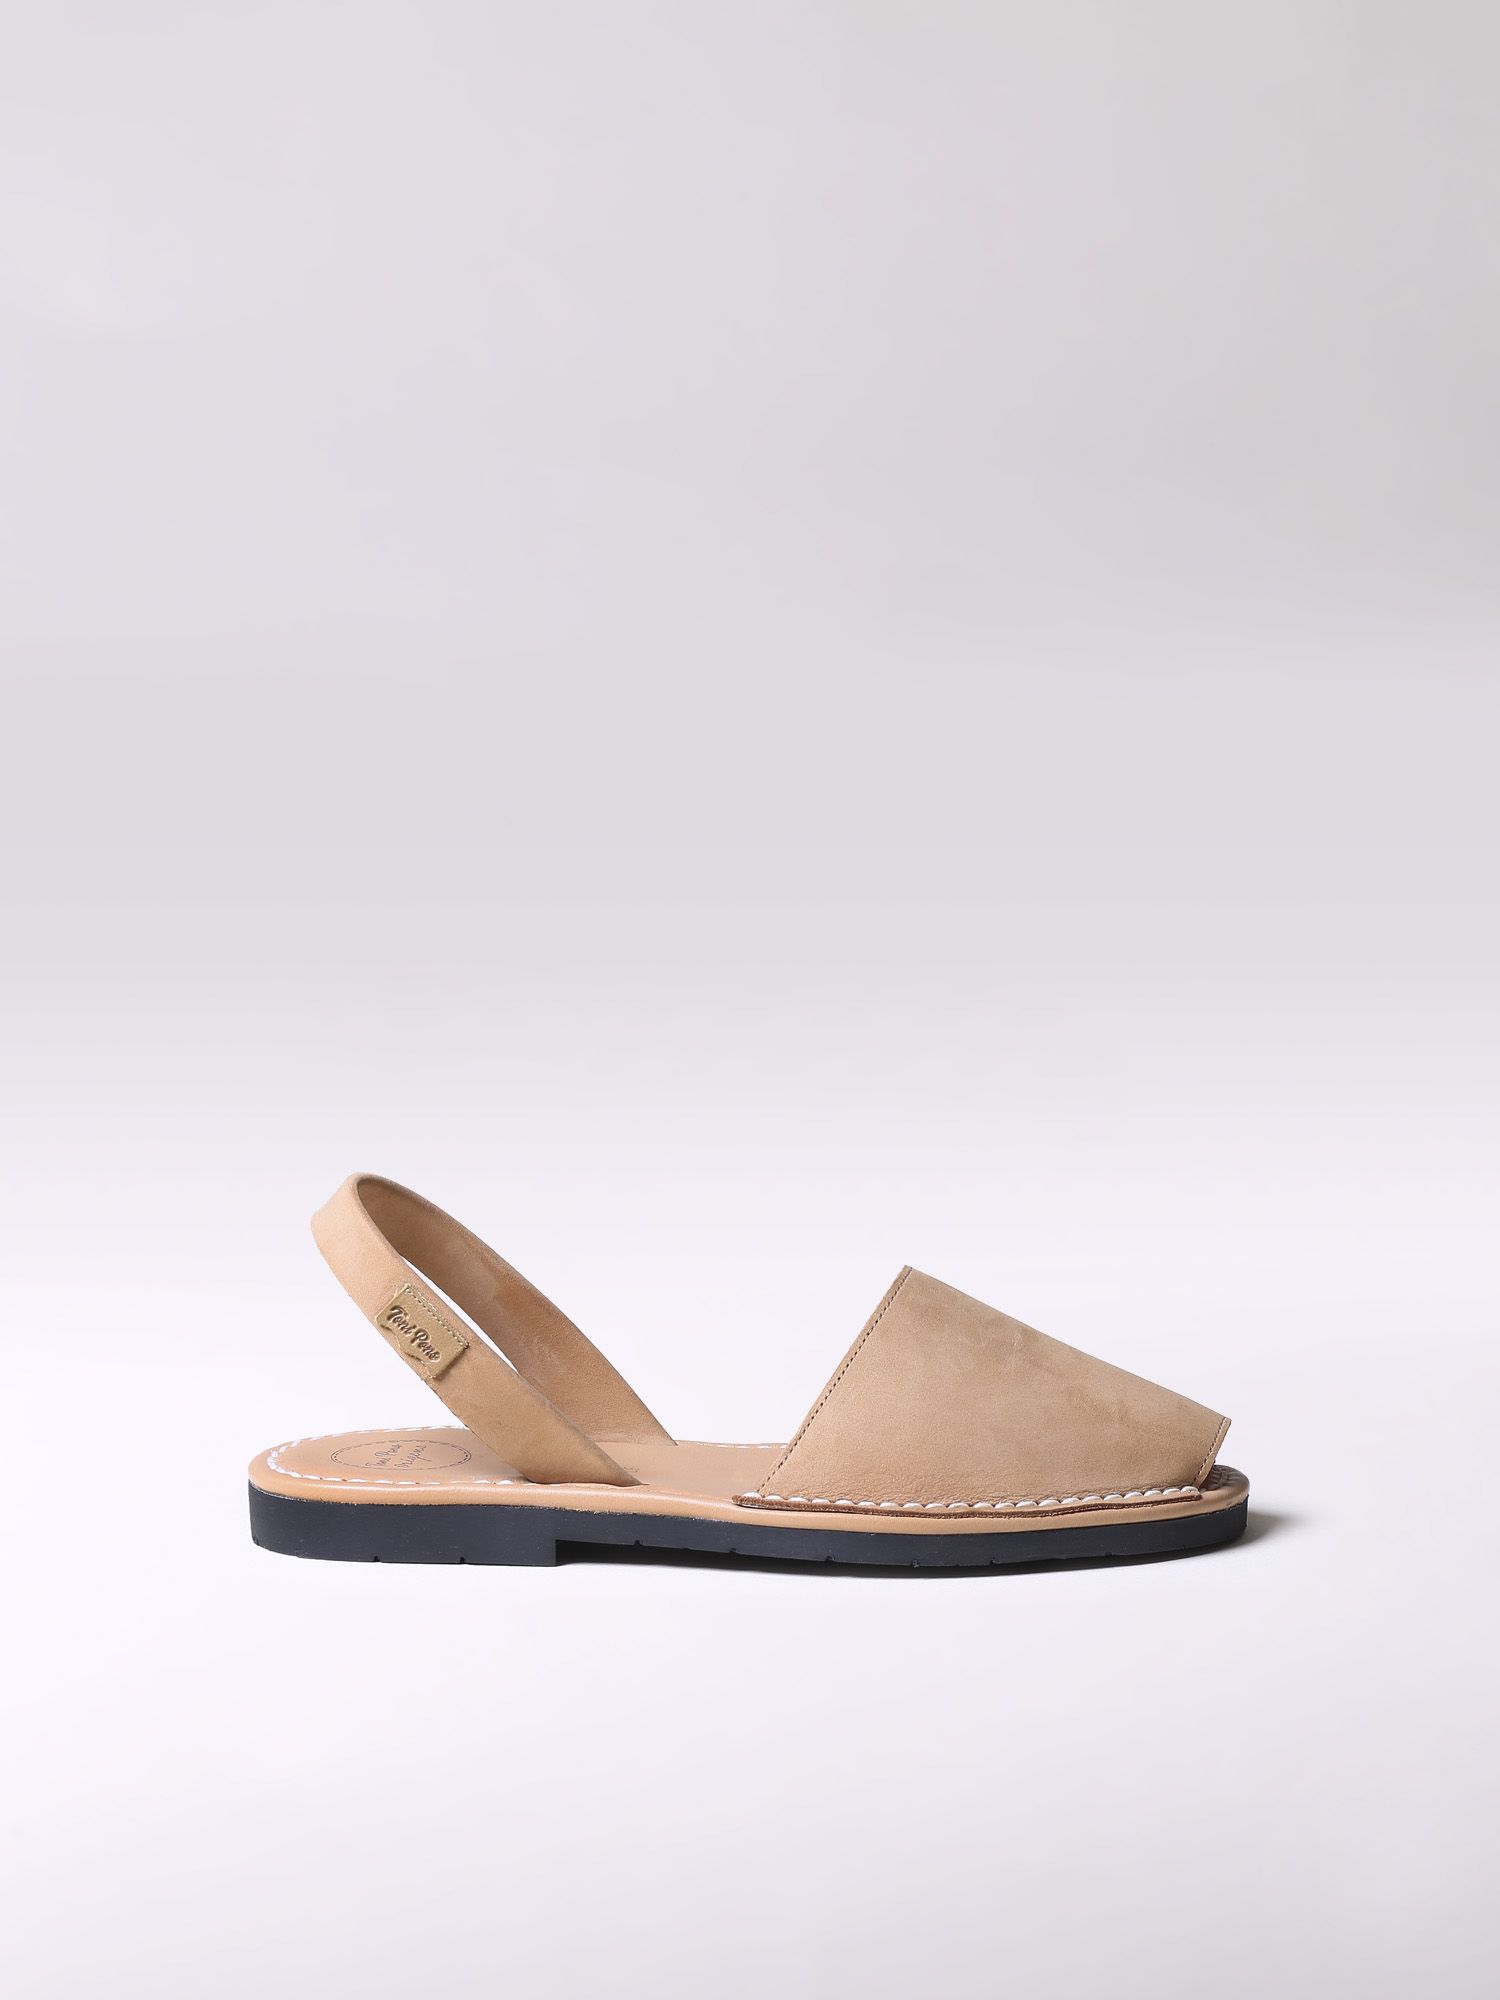 Nobuck leather avarca sandals - MAO-N